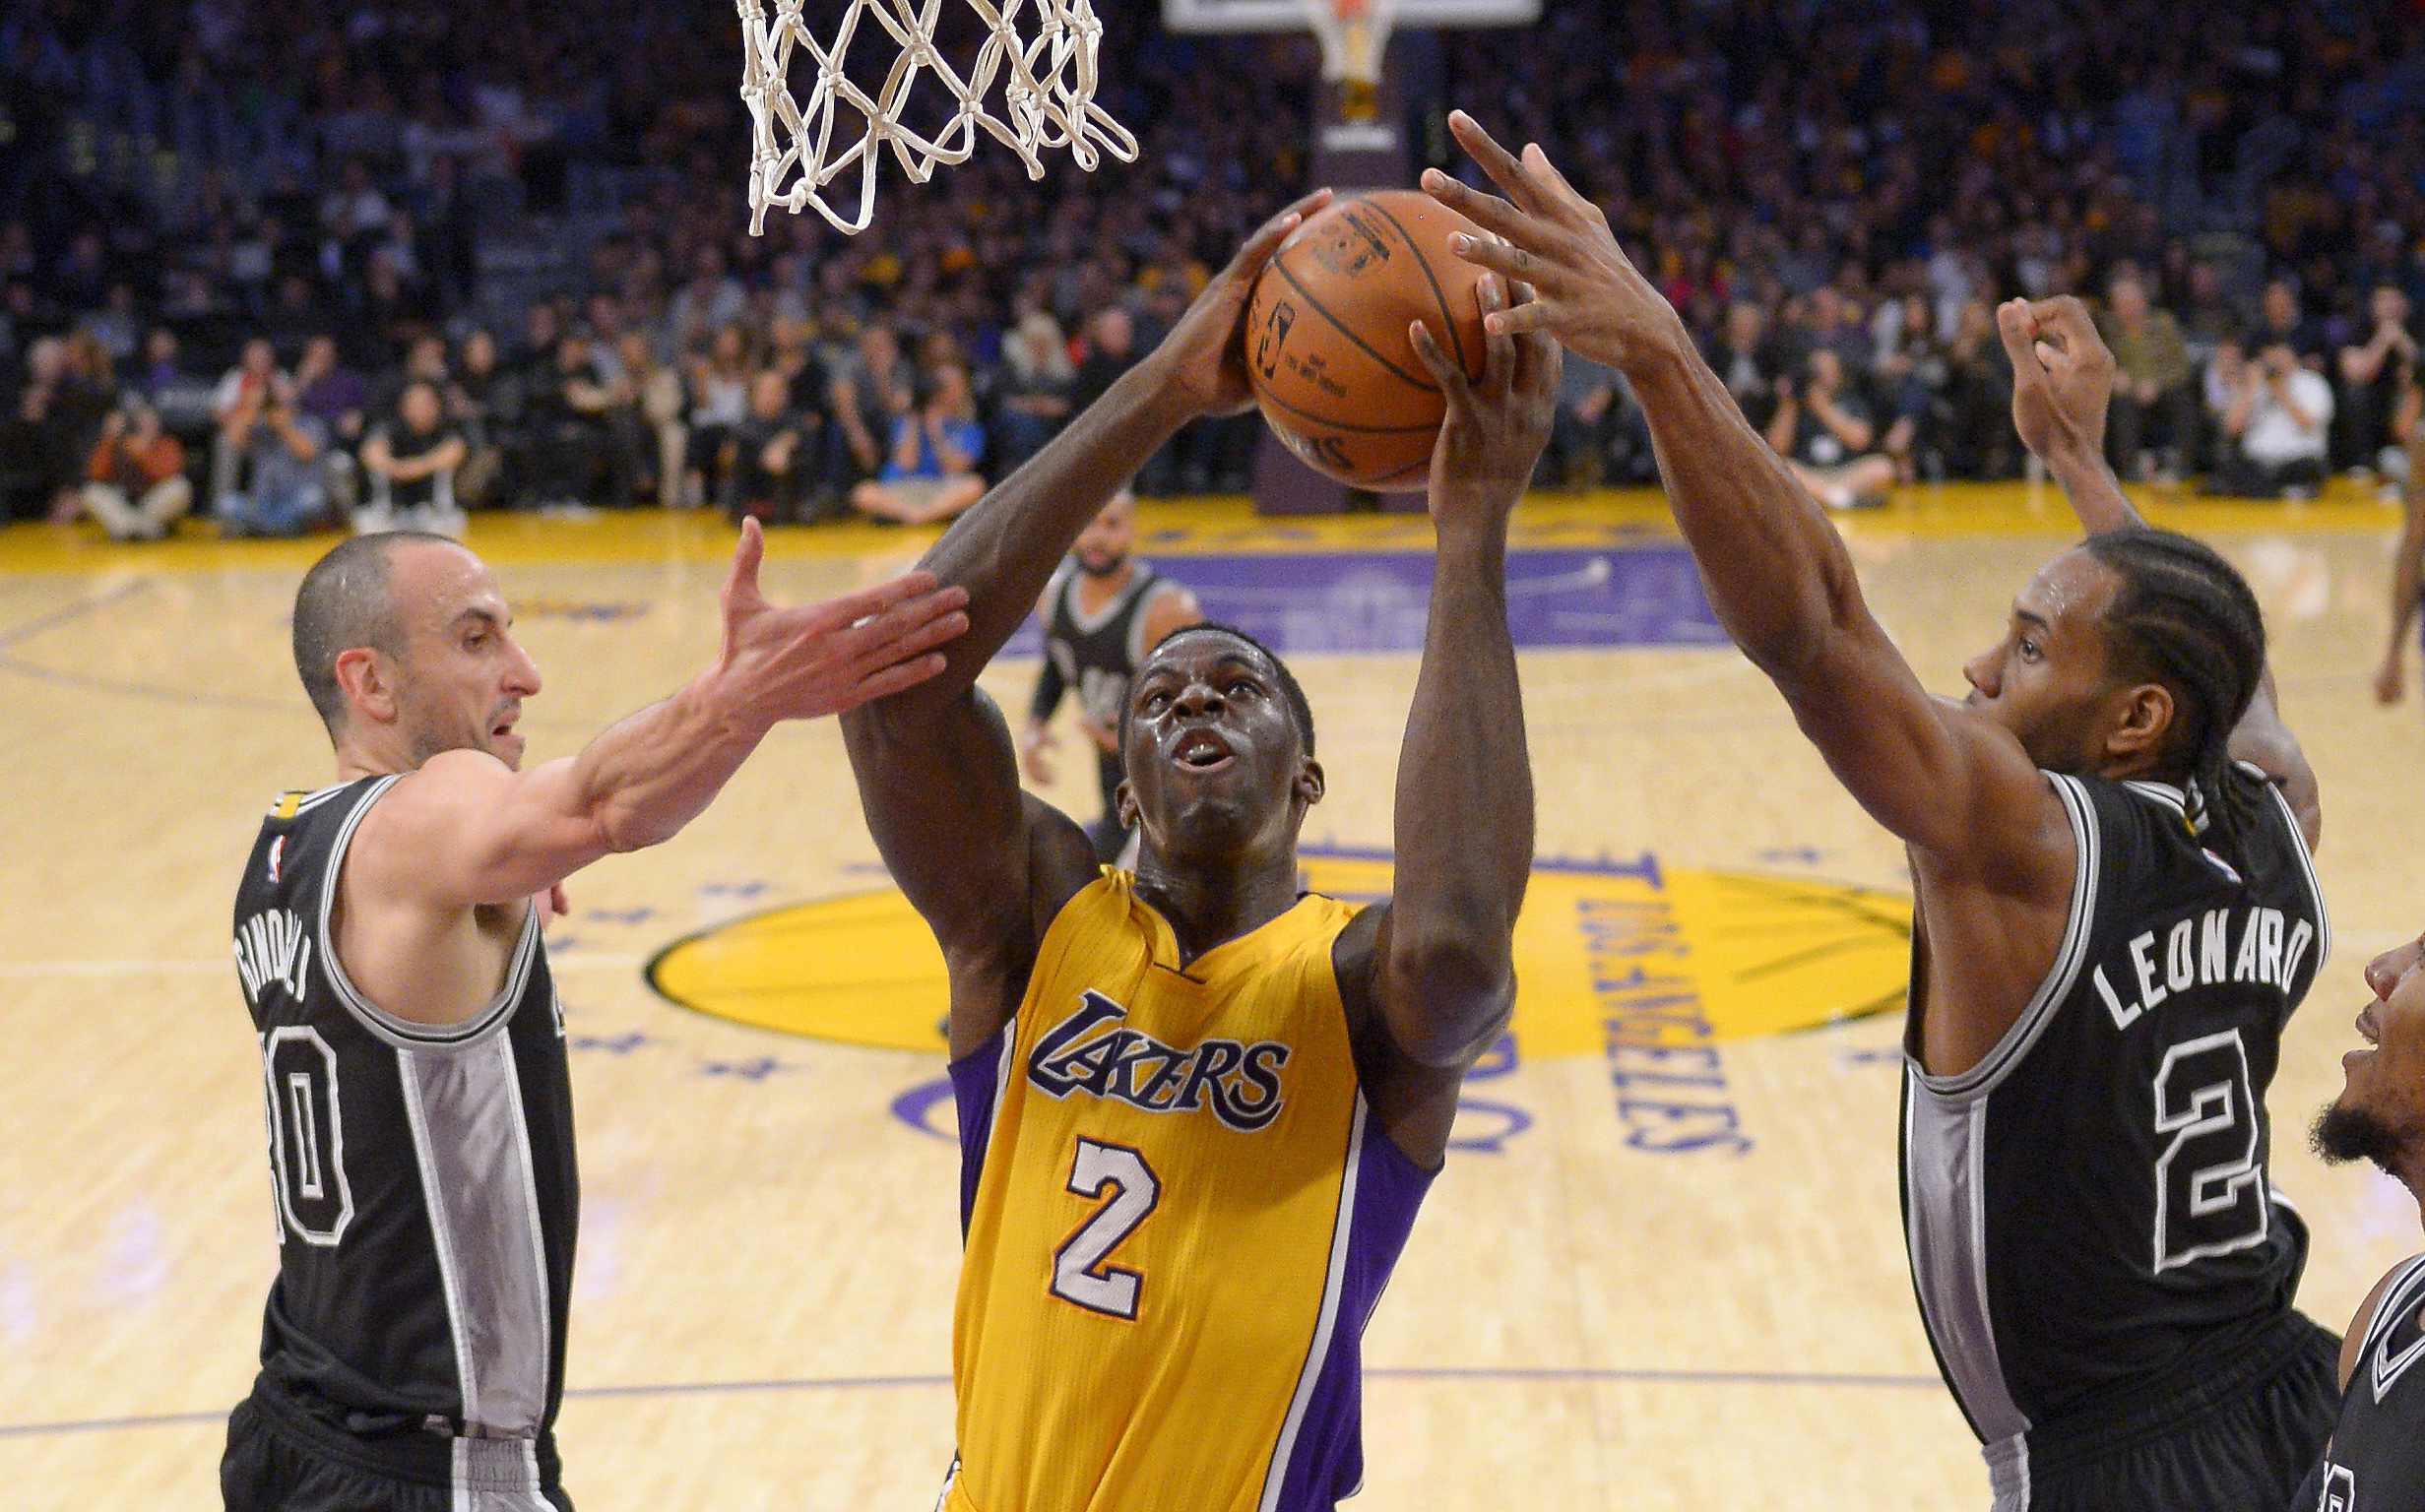 Los Angeles Lakers forward Brandon Bass shoots between San Antonio Spurs guard Manu Ginobili, left, and forward Kawhi Leonard during the first half of an NBA basketball game Friday, Jan. 22, 2016, in Los Angeles. (AP Photo/Mark J. Terrill)